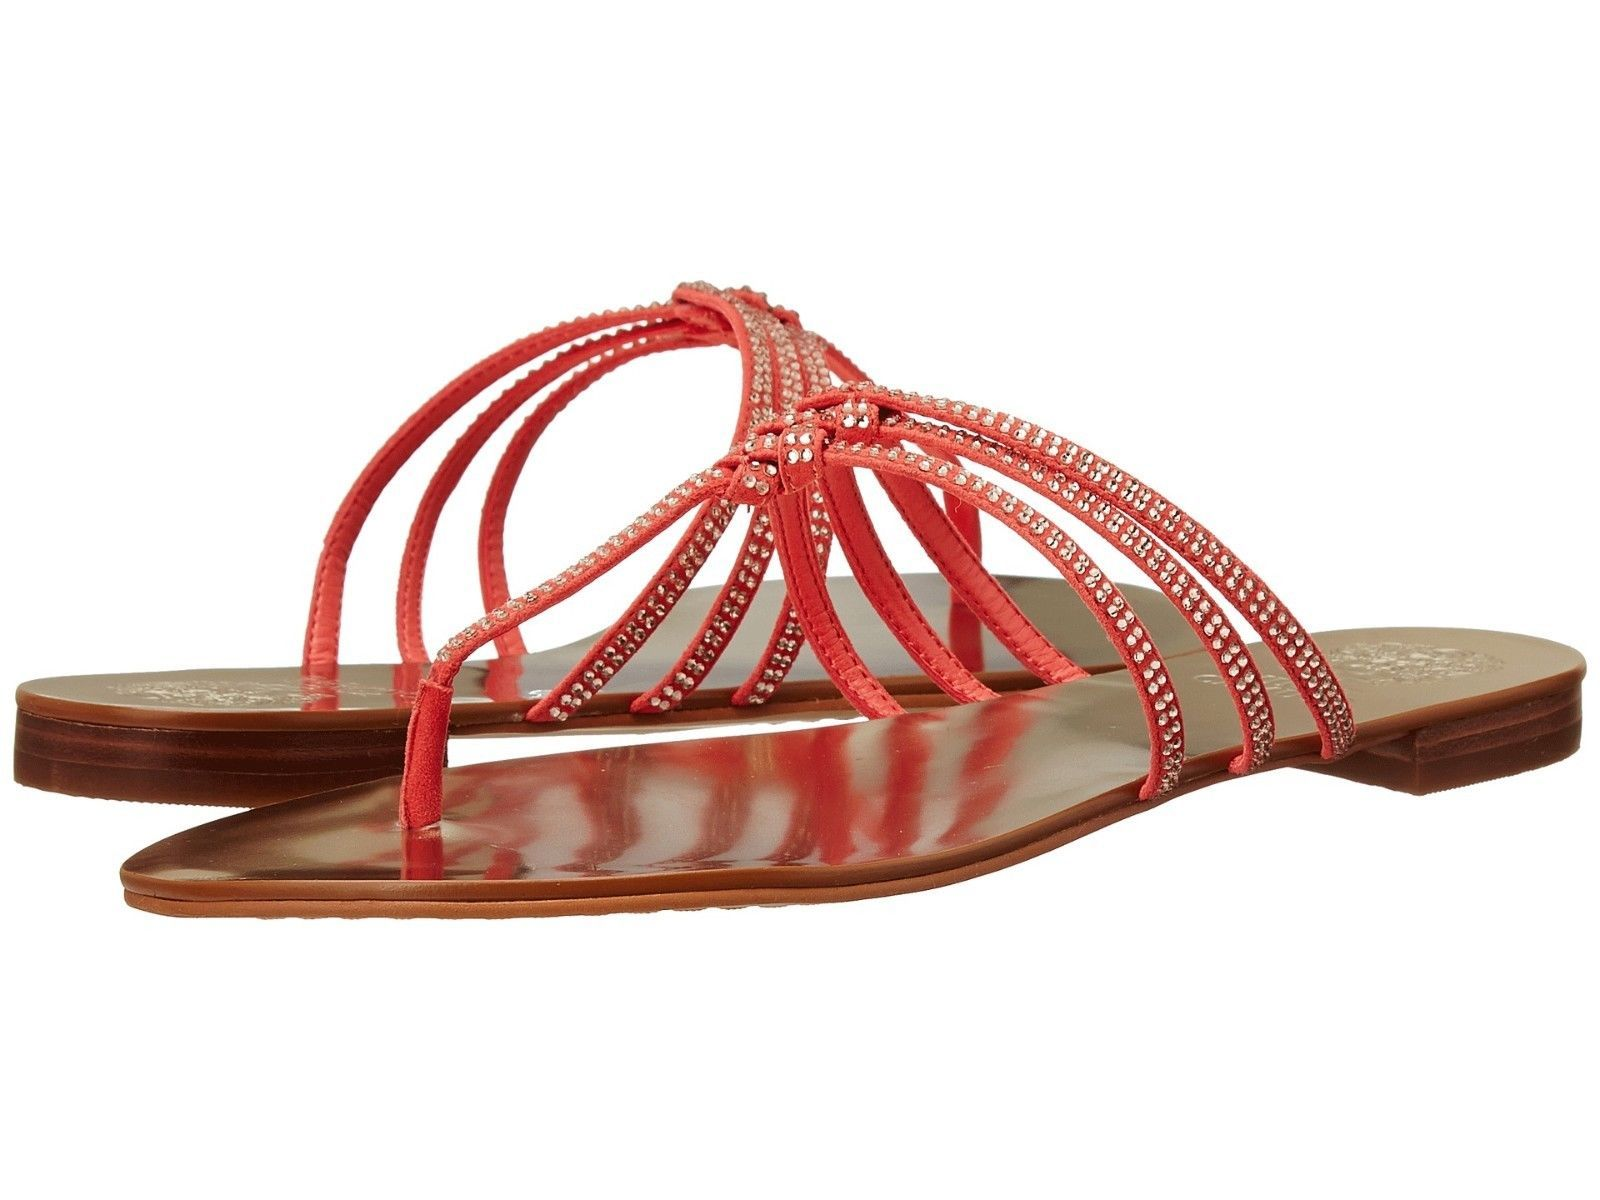 Primary image for Vince Camuto Mariella Jeweled Sandals, Sizes 5.5-8.5 BitterSwt Grapefruit True S